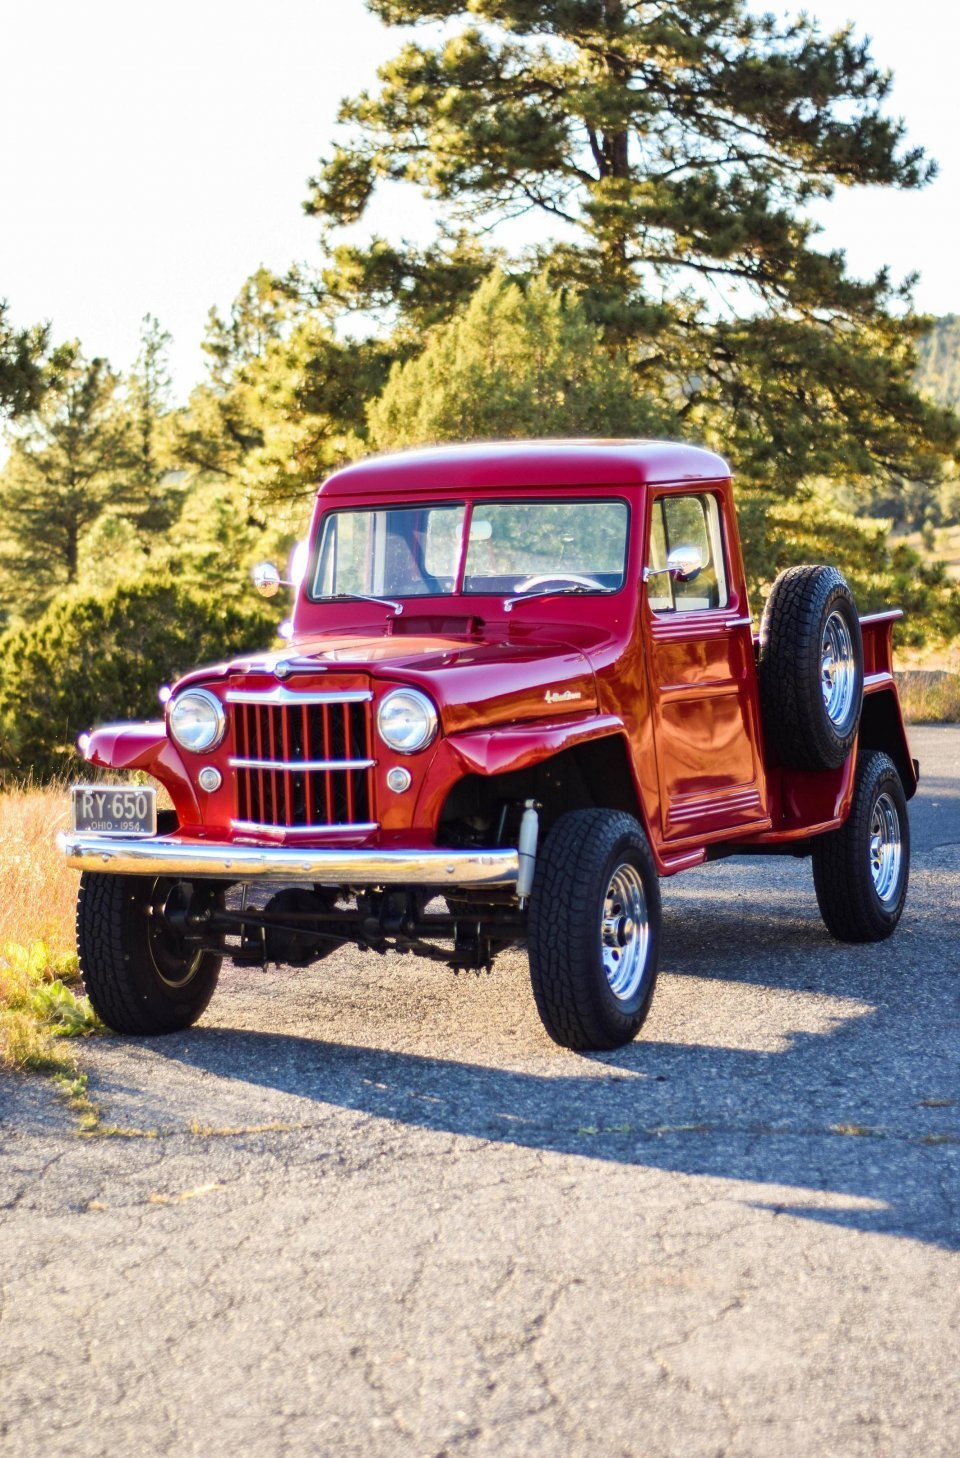 Alan St Germain Kaiser Willys Jeep Blog 1941 Pickup Trucks 1954 Truck